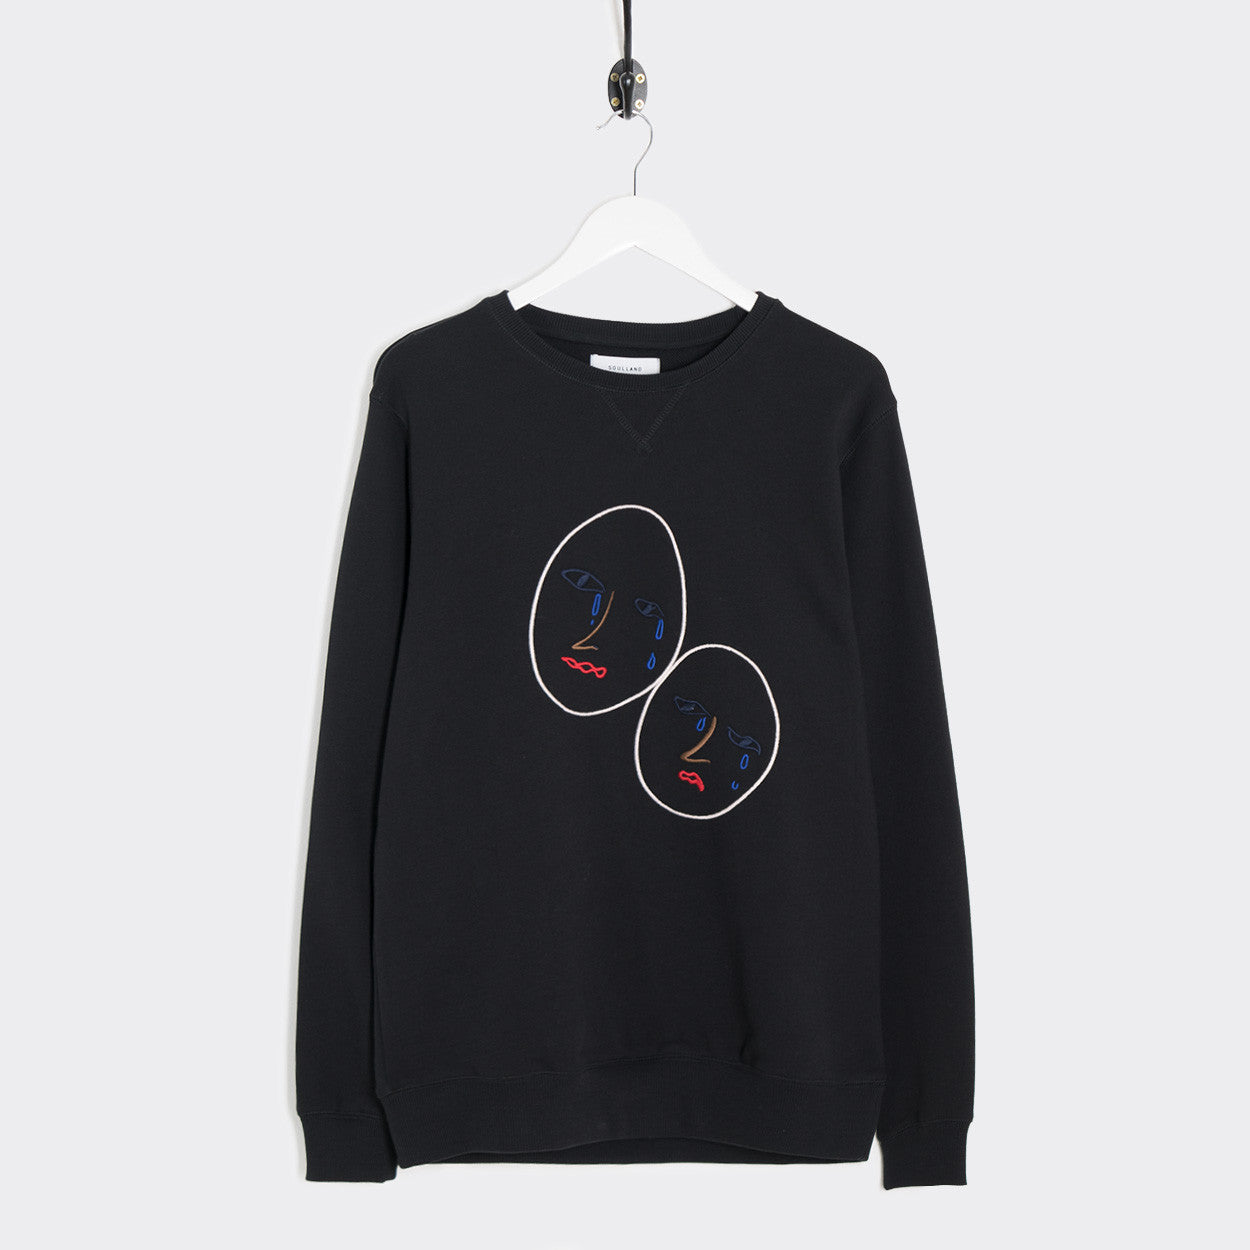 Soulland Joseph Sweatshirt - Black  - CARTOCON